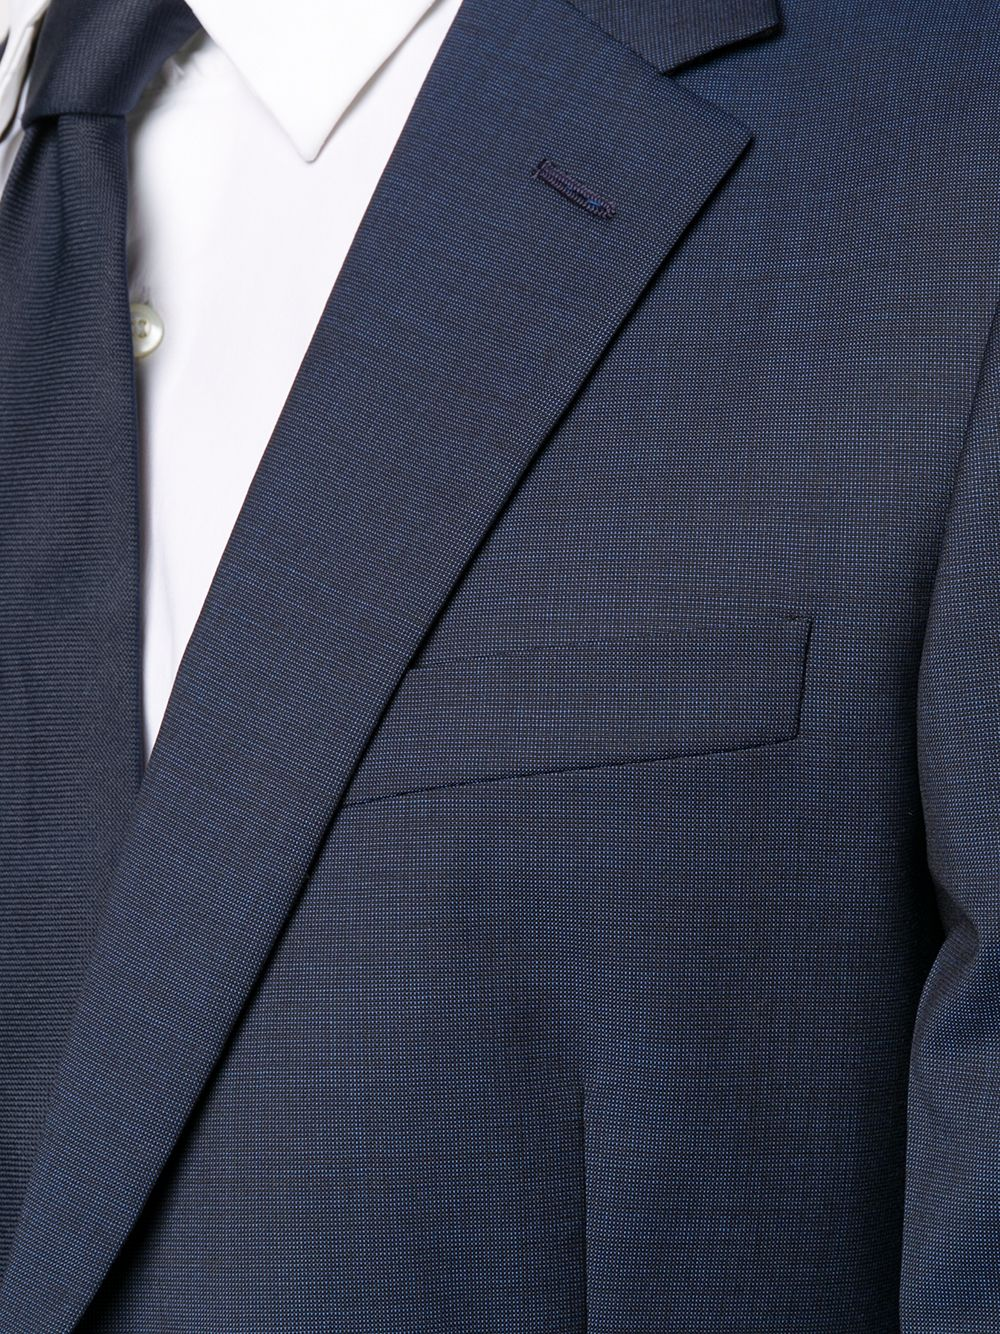 Picture of Prada | Single Breasted Suit